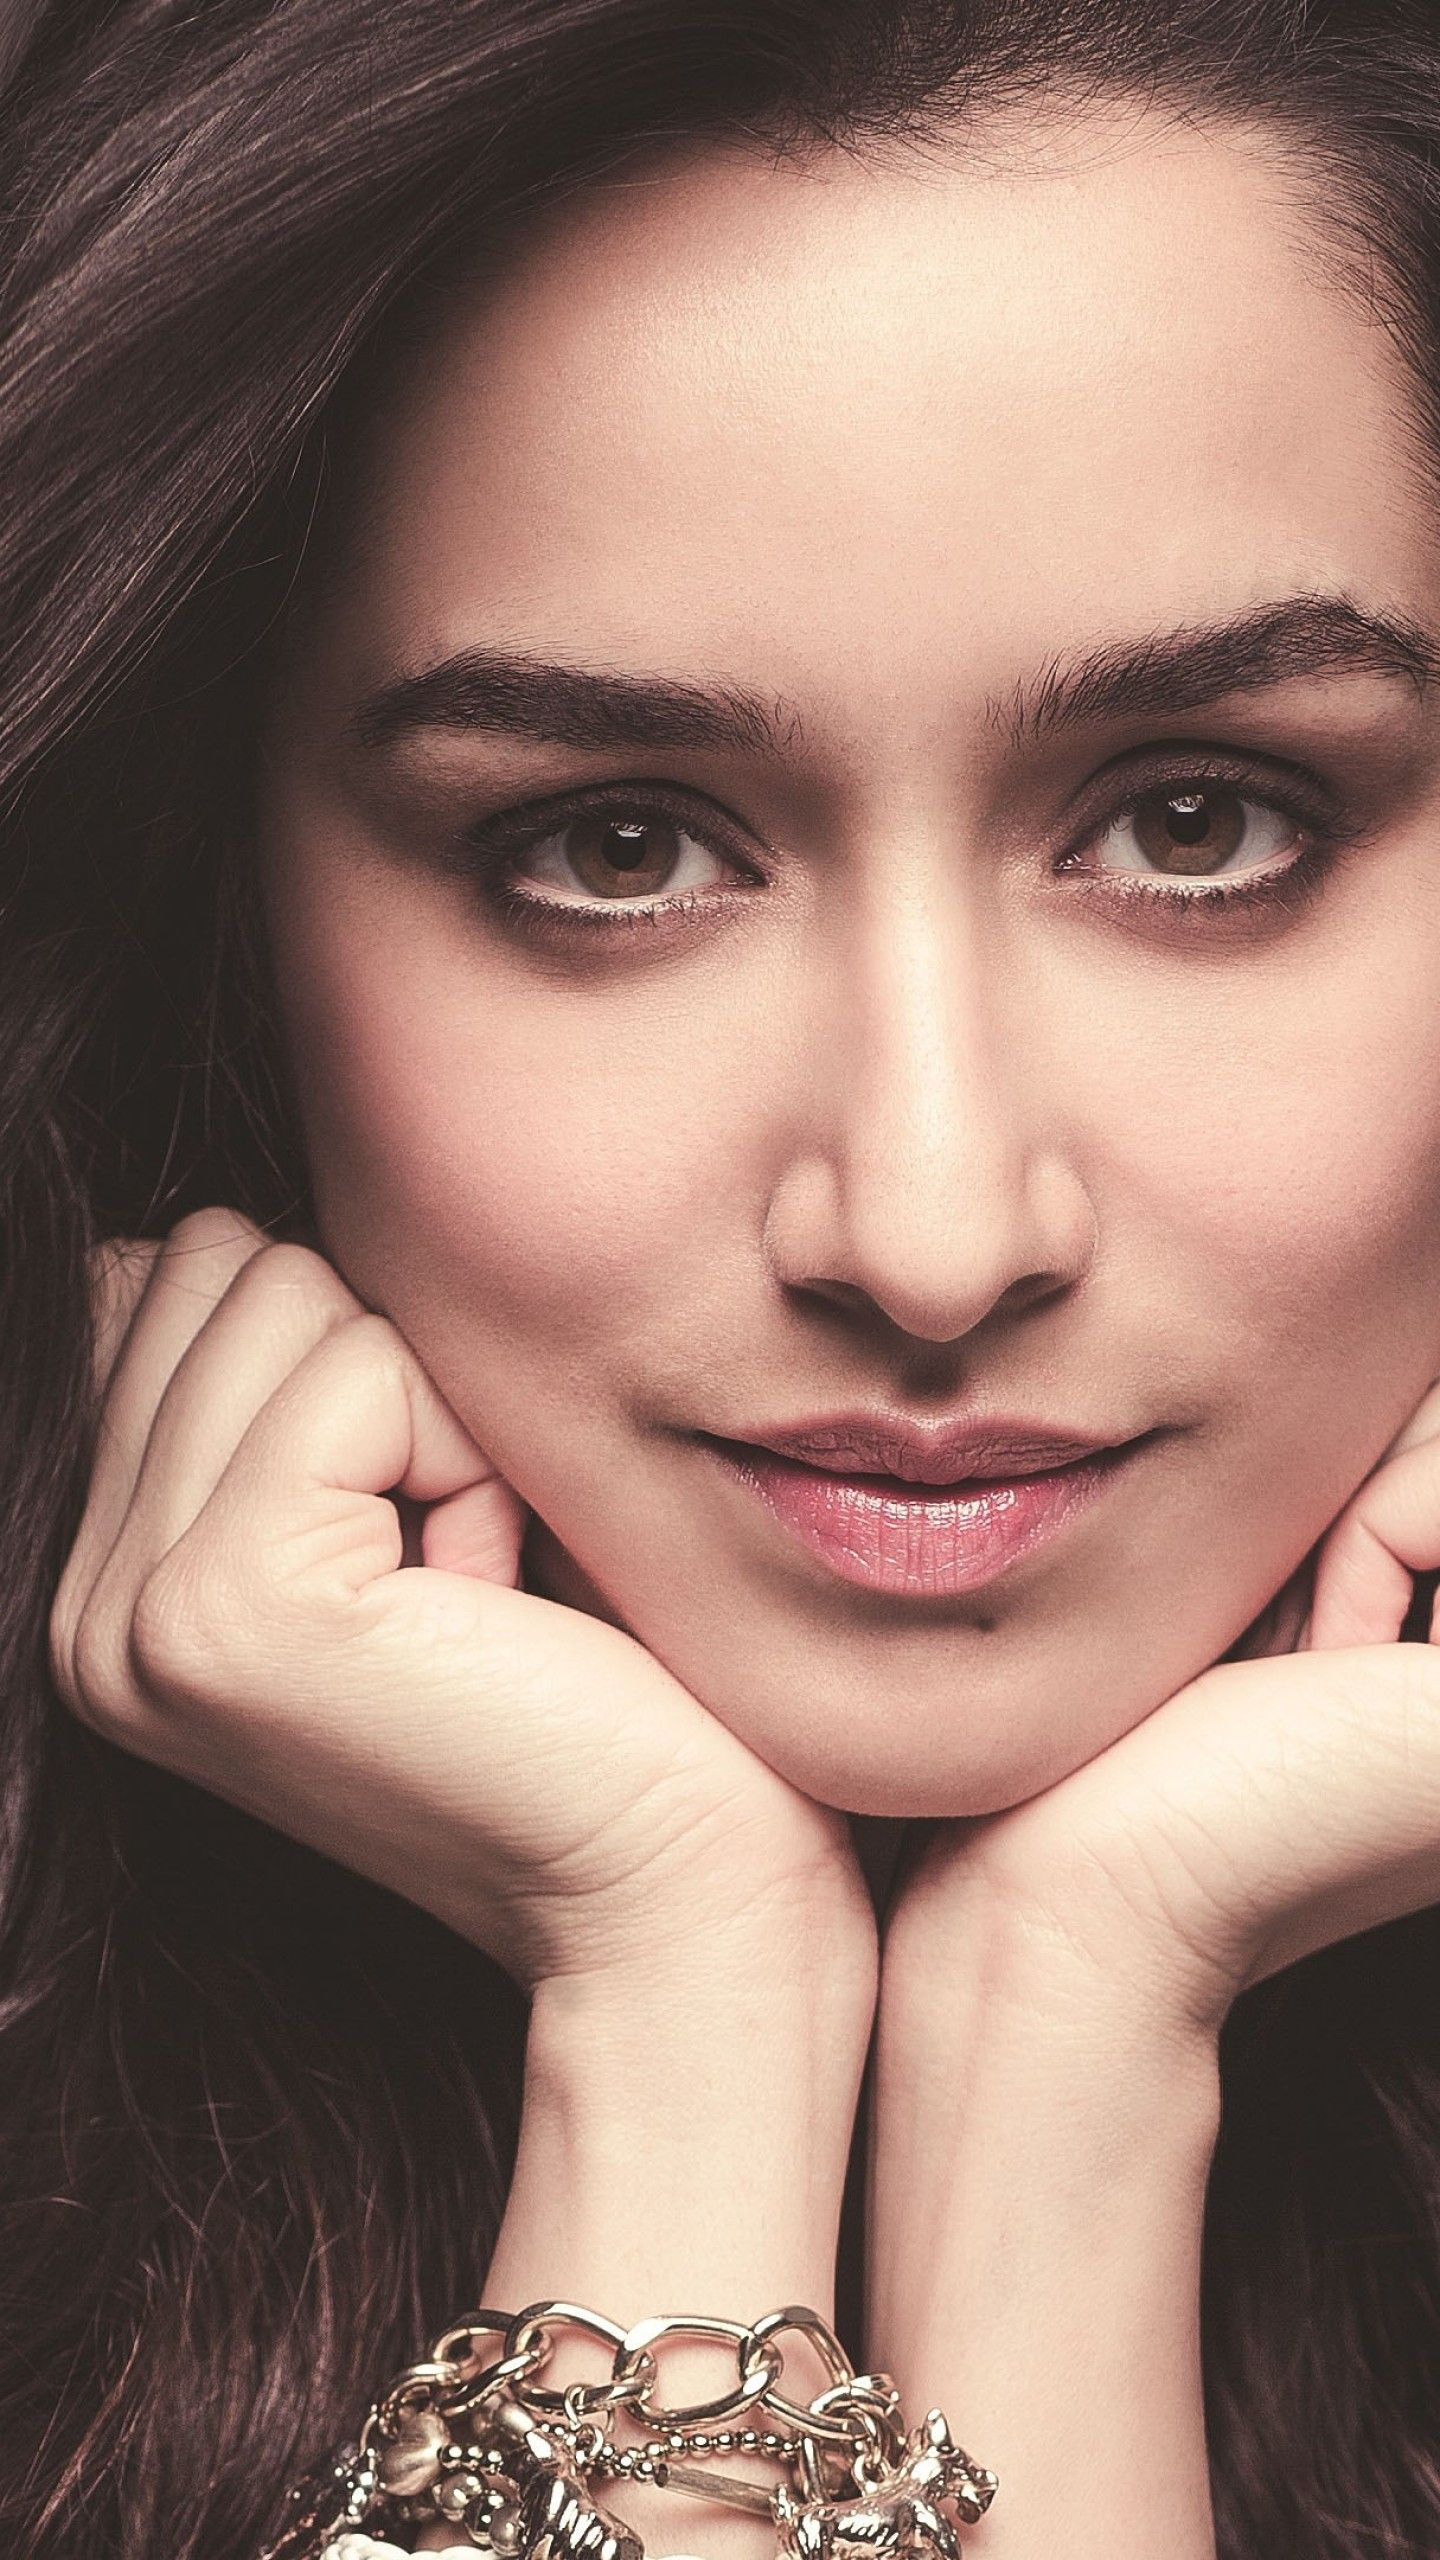 Wallpapers Shraddha Kapoor, 4k, photo, bollywood, Celebrities